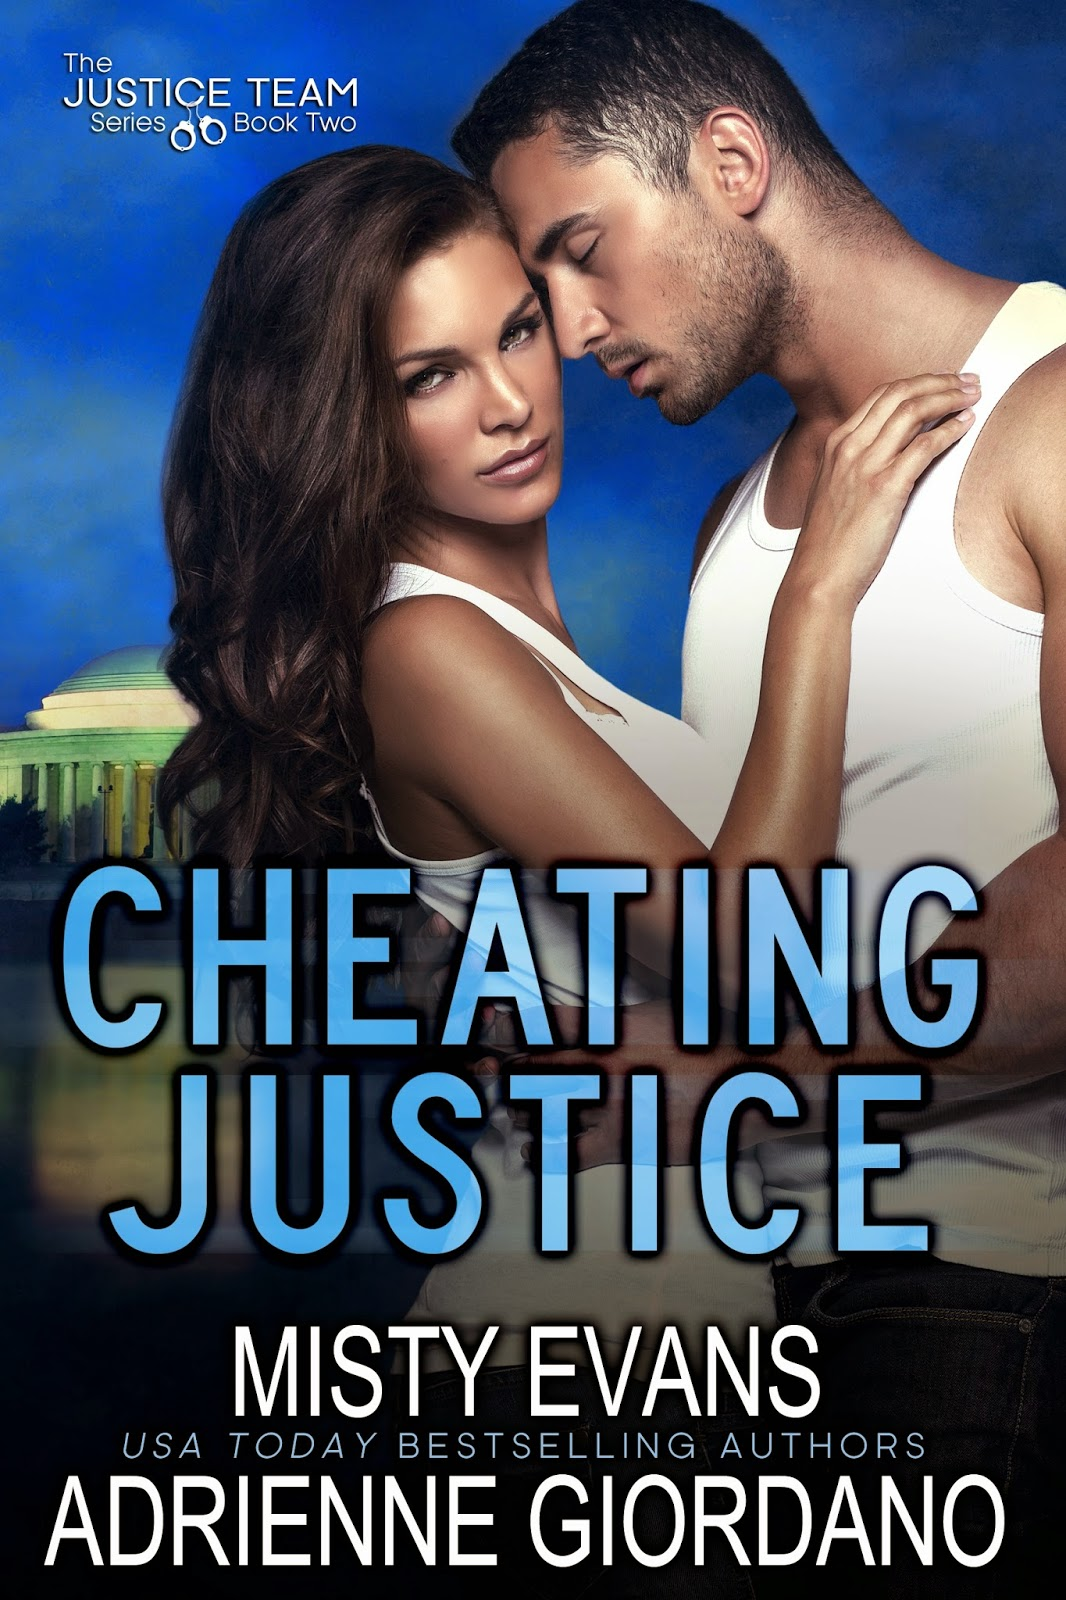 http://www.amazon.com/Cheating-Justice-Team-Book-ebook/dp/B00LXGS0P2/ref=sr_1_7?ie=UTF8&qid=1405893413&sr=8-7&keywords=misty+evans